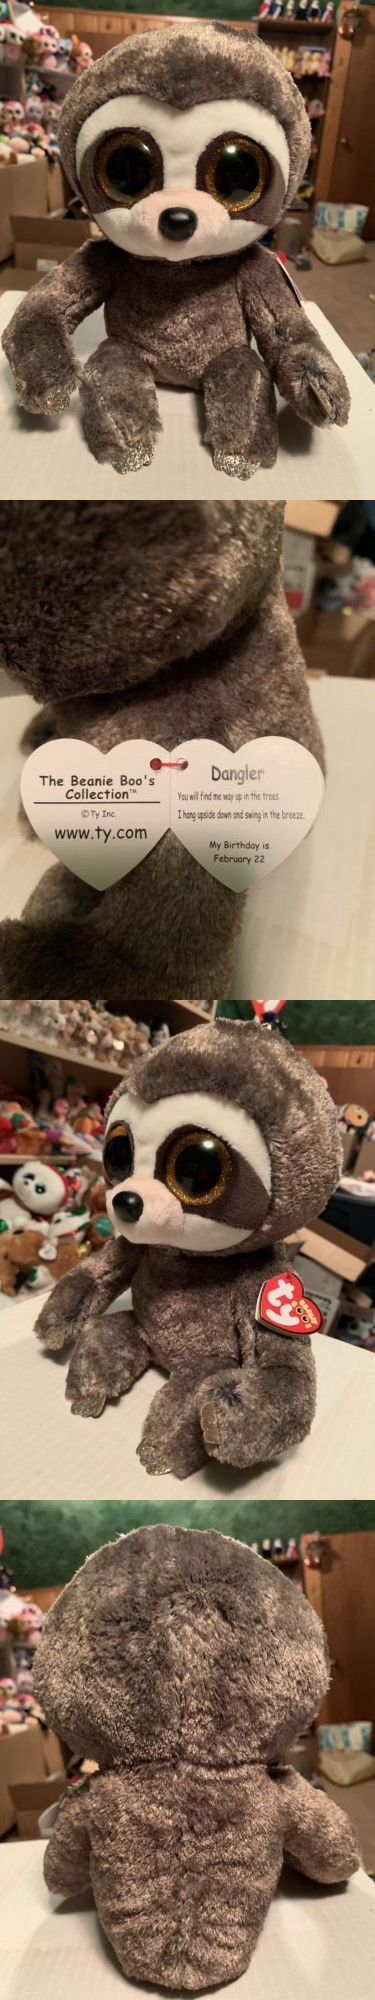 """1ffba0b7641 Current 1628  Ty Dangler -Brown Beige Gold Sloth 10"""" Beanie Boo Buddy!   New  -  BUY IT NOW ONLY   15.99 on  eBay  current  dangler  beige  sloth   beanie"""